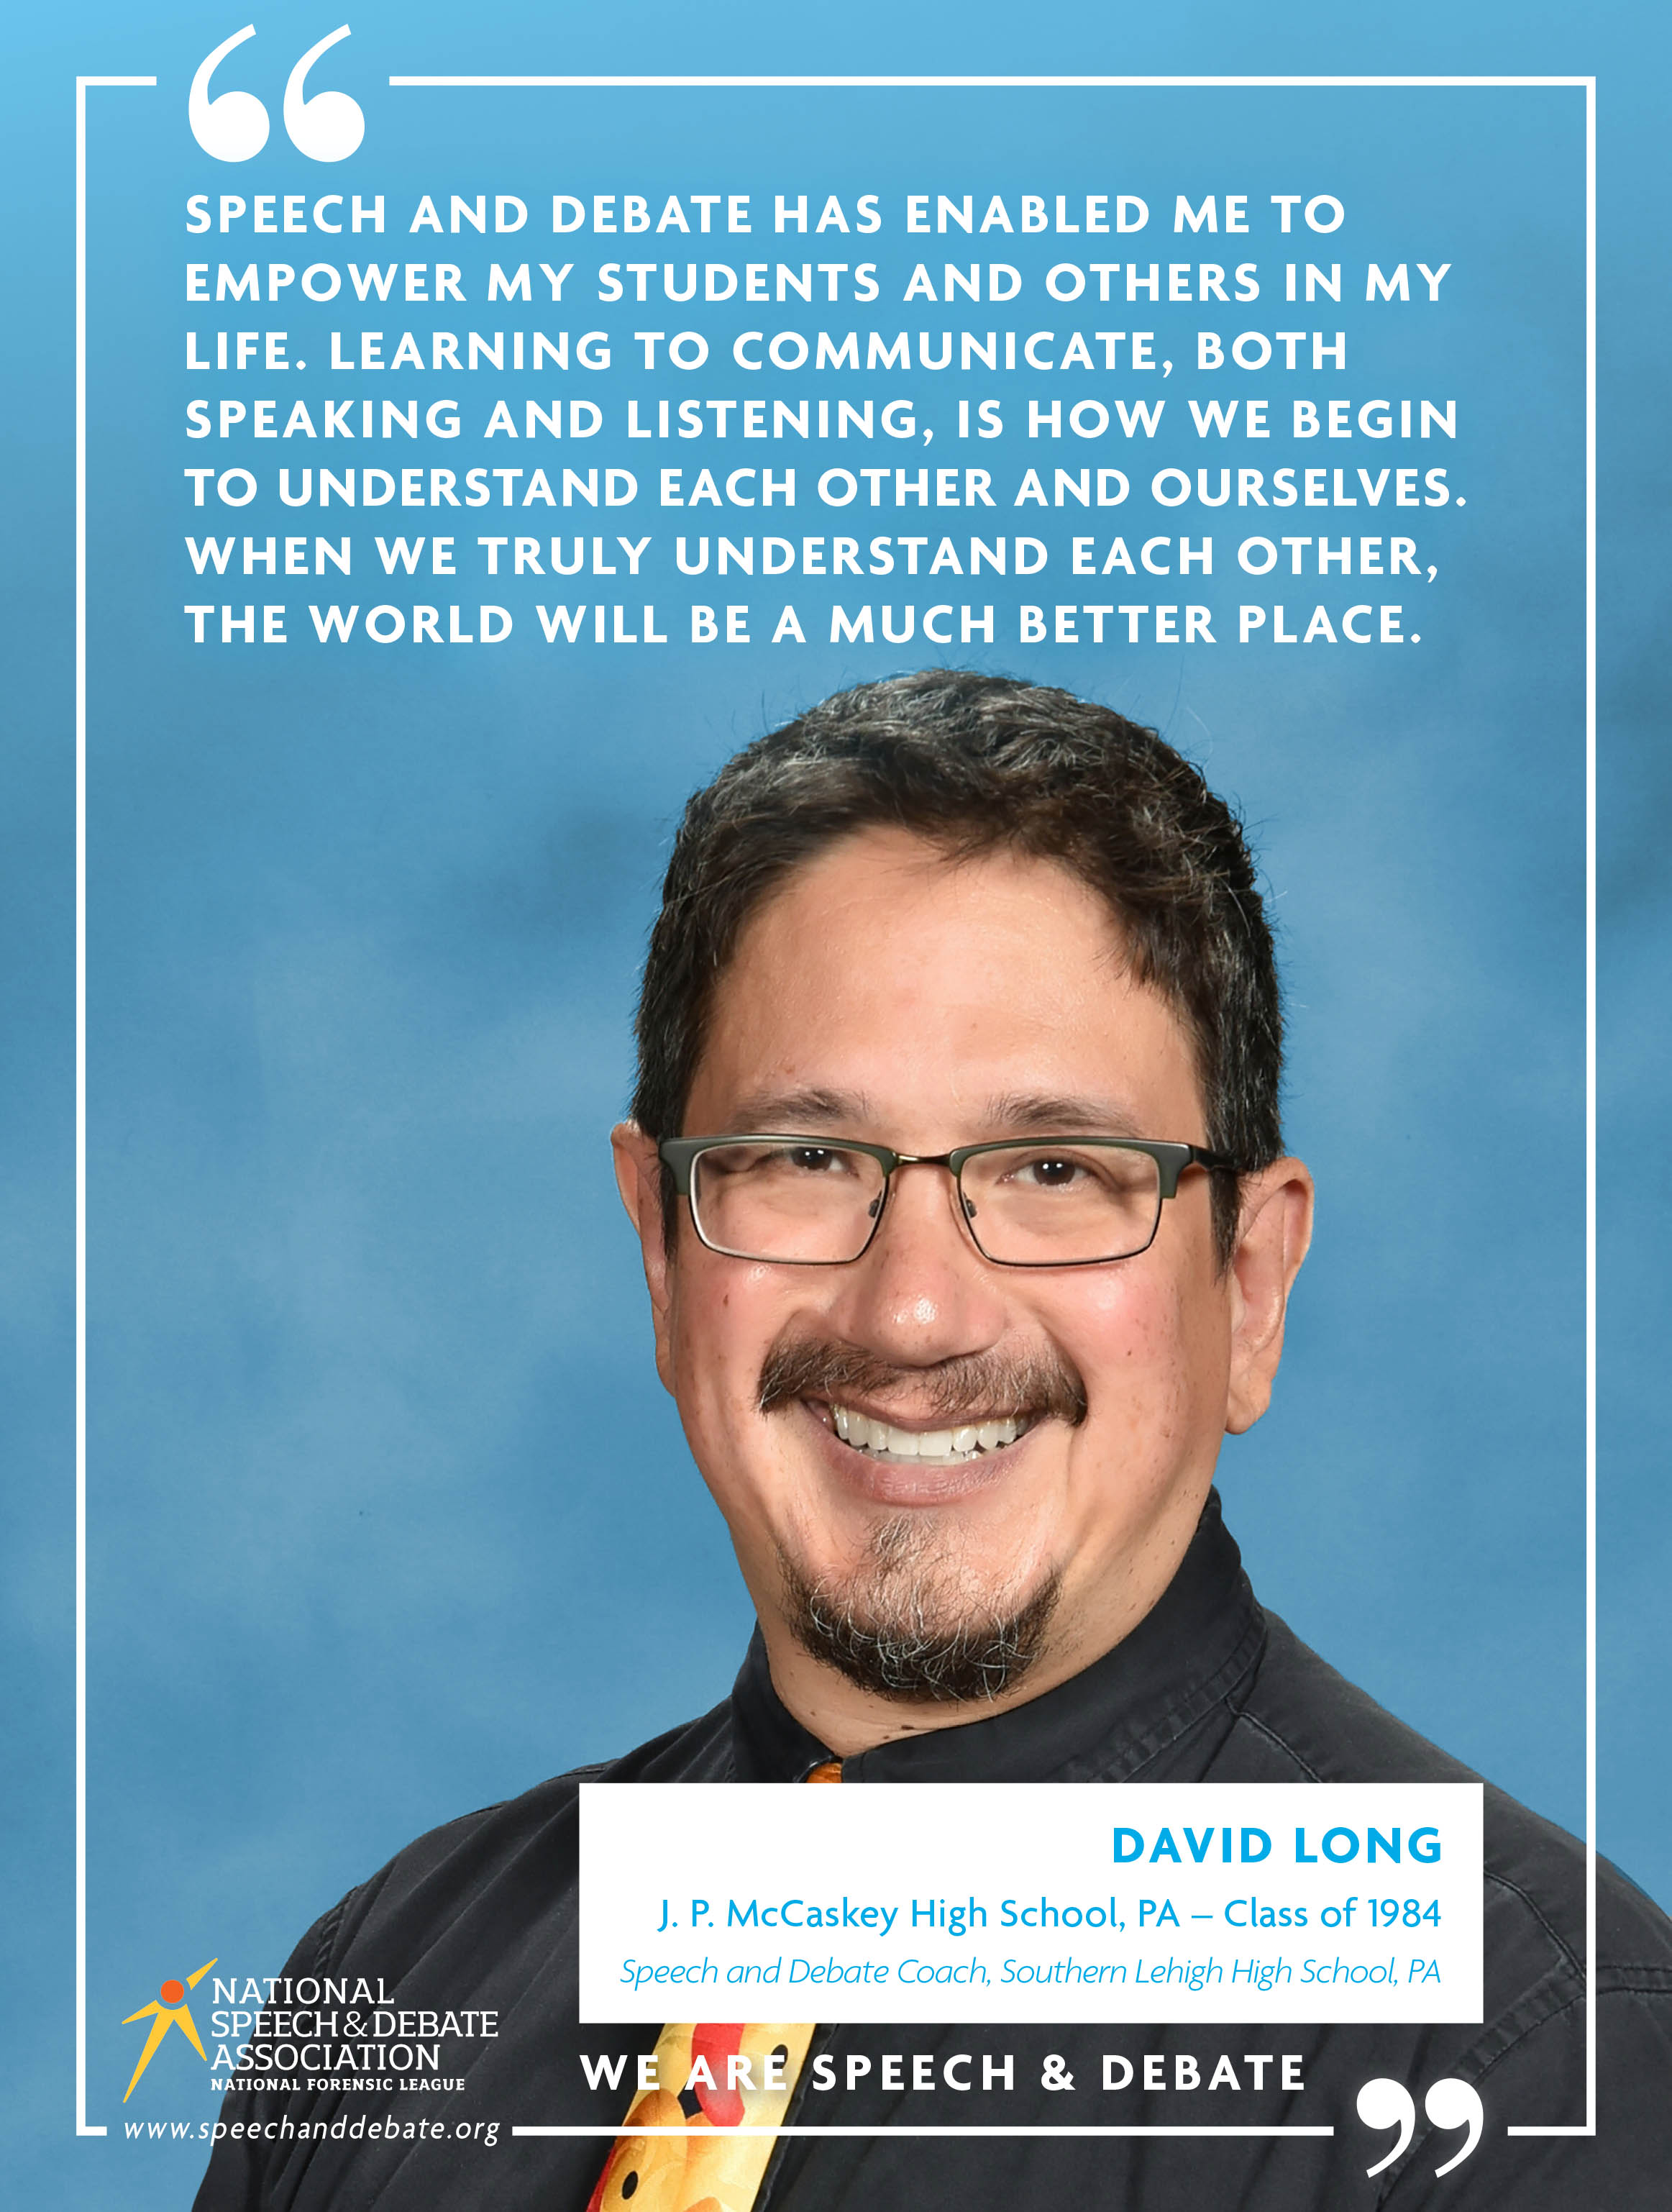 SPEECH AND DEBATE HAS ENABLED ME TO EMPOWER MY STUDENTS AND OTHERS IN MY LIFE. LEARNING TO COMMUNICATE, BOTH SPEAKING AND LISTENING, IS HOW WE BEGIN TO UNDERSTAND EACH OTHER AND OURSELVES. WHEN WE TRULY UNDERSTAND EACH OTHER, THE WORLD WILL BE A MUCH BETTER PLACE. - David Long